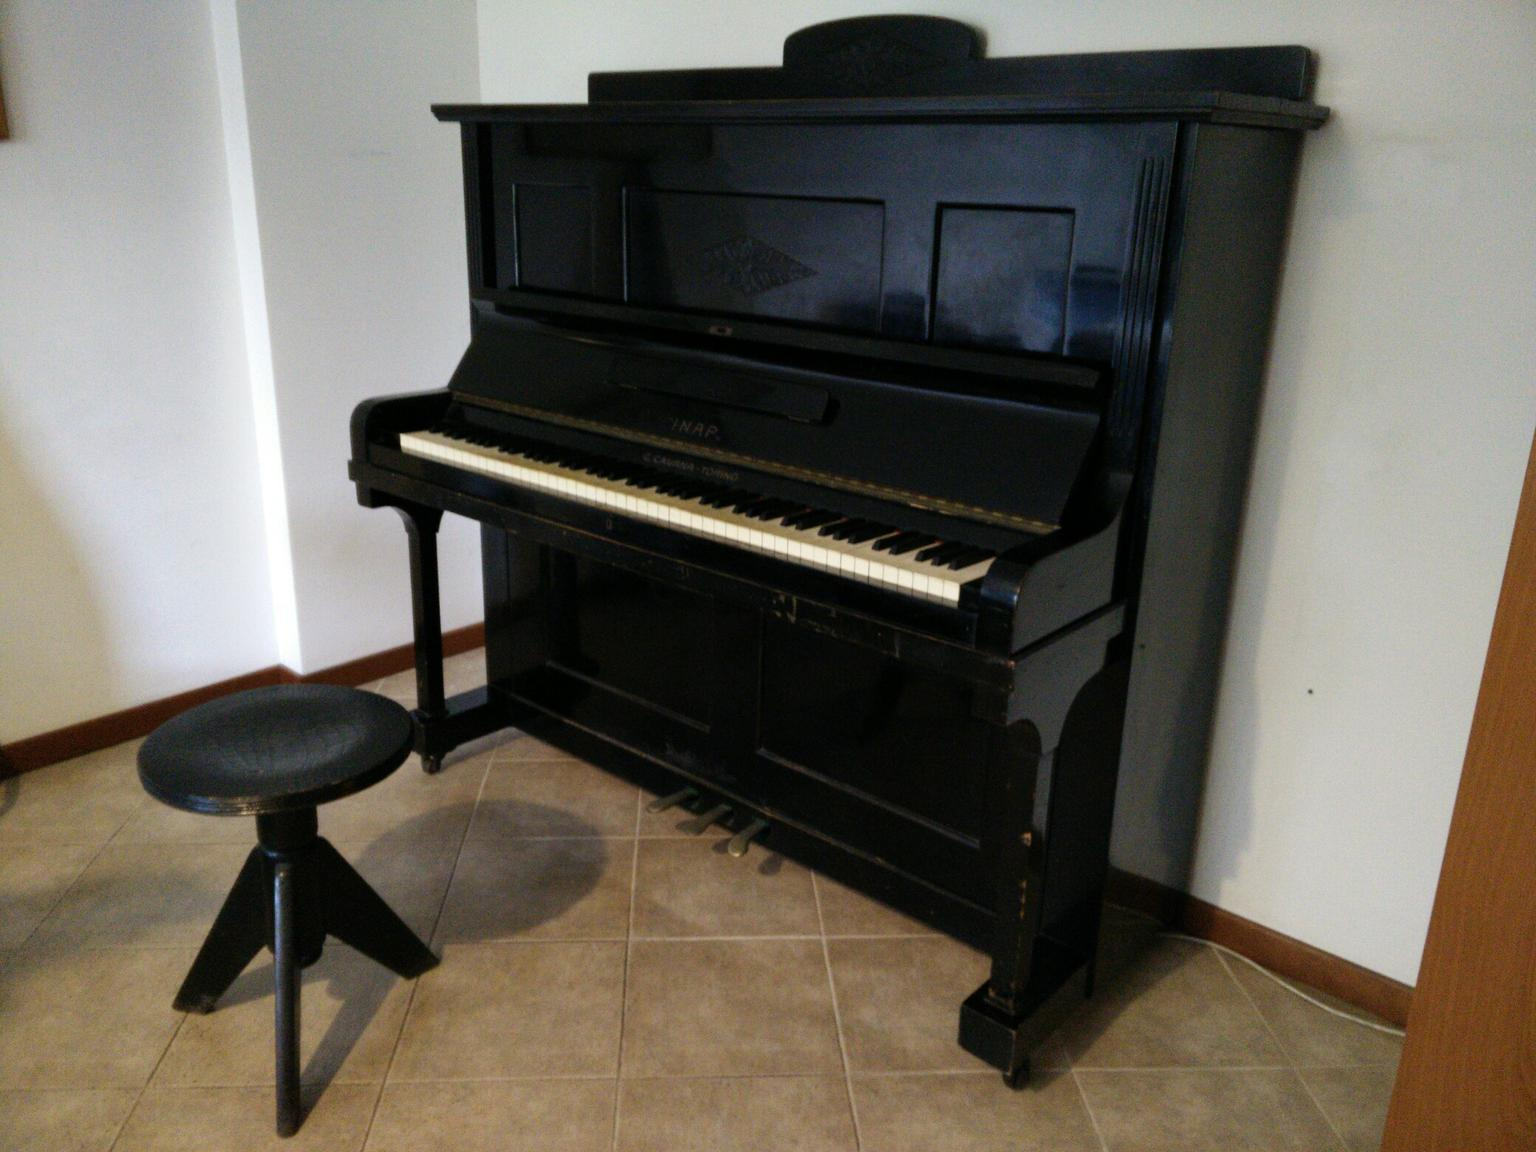 Pianoforte verticale inap g. cavana in 00138 roma for u20ac300.00 for